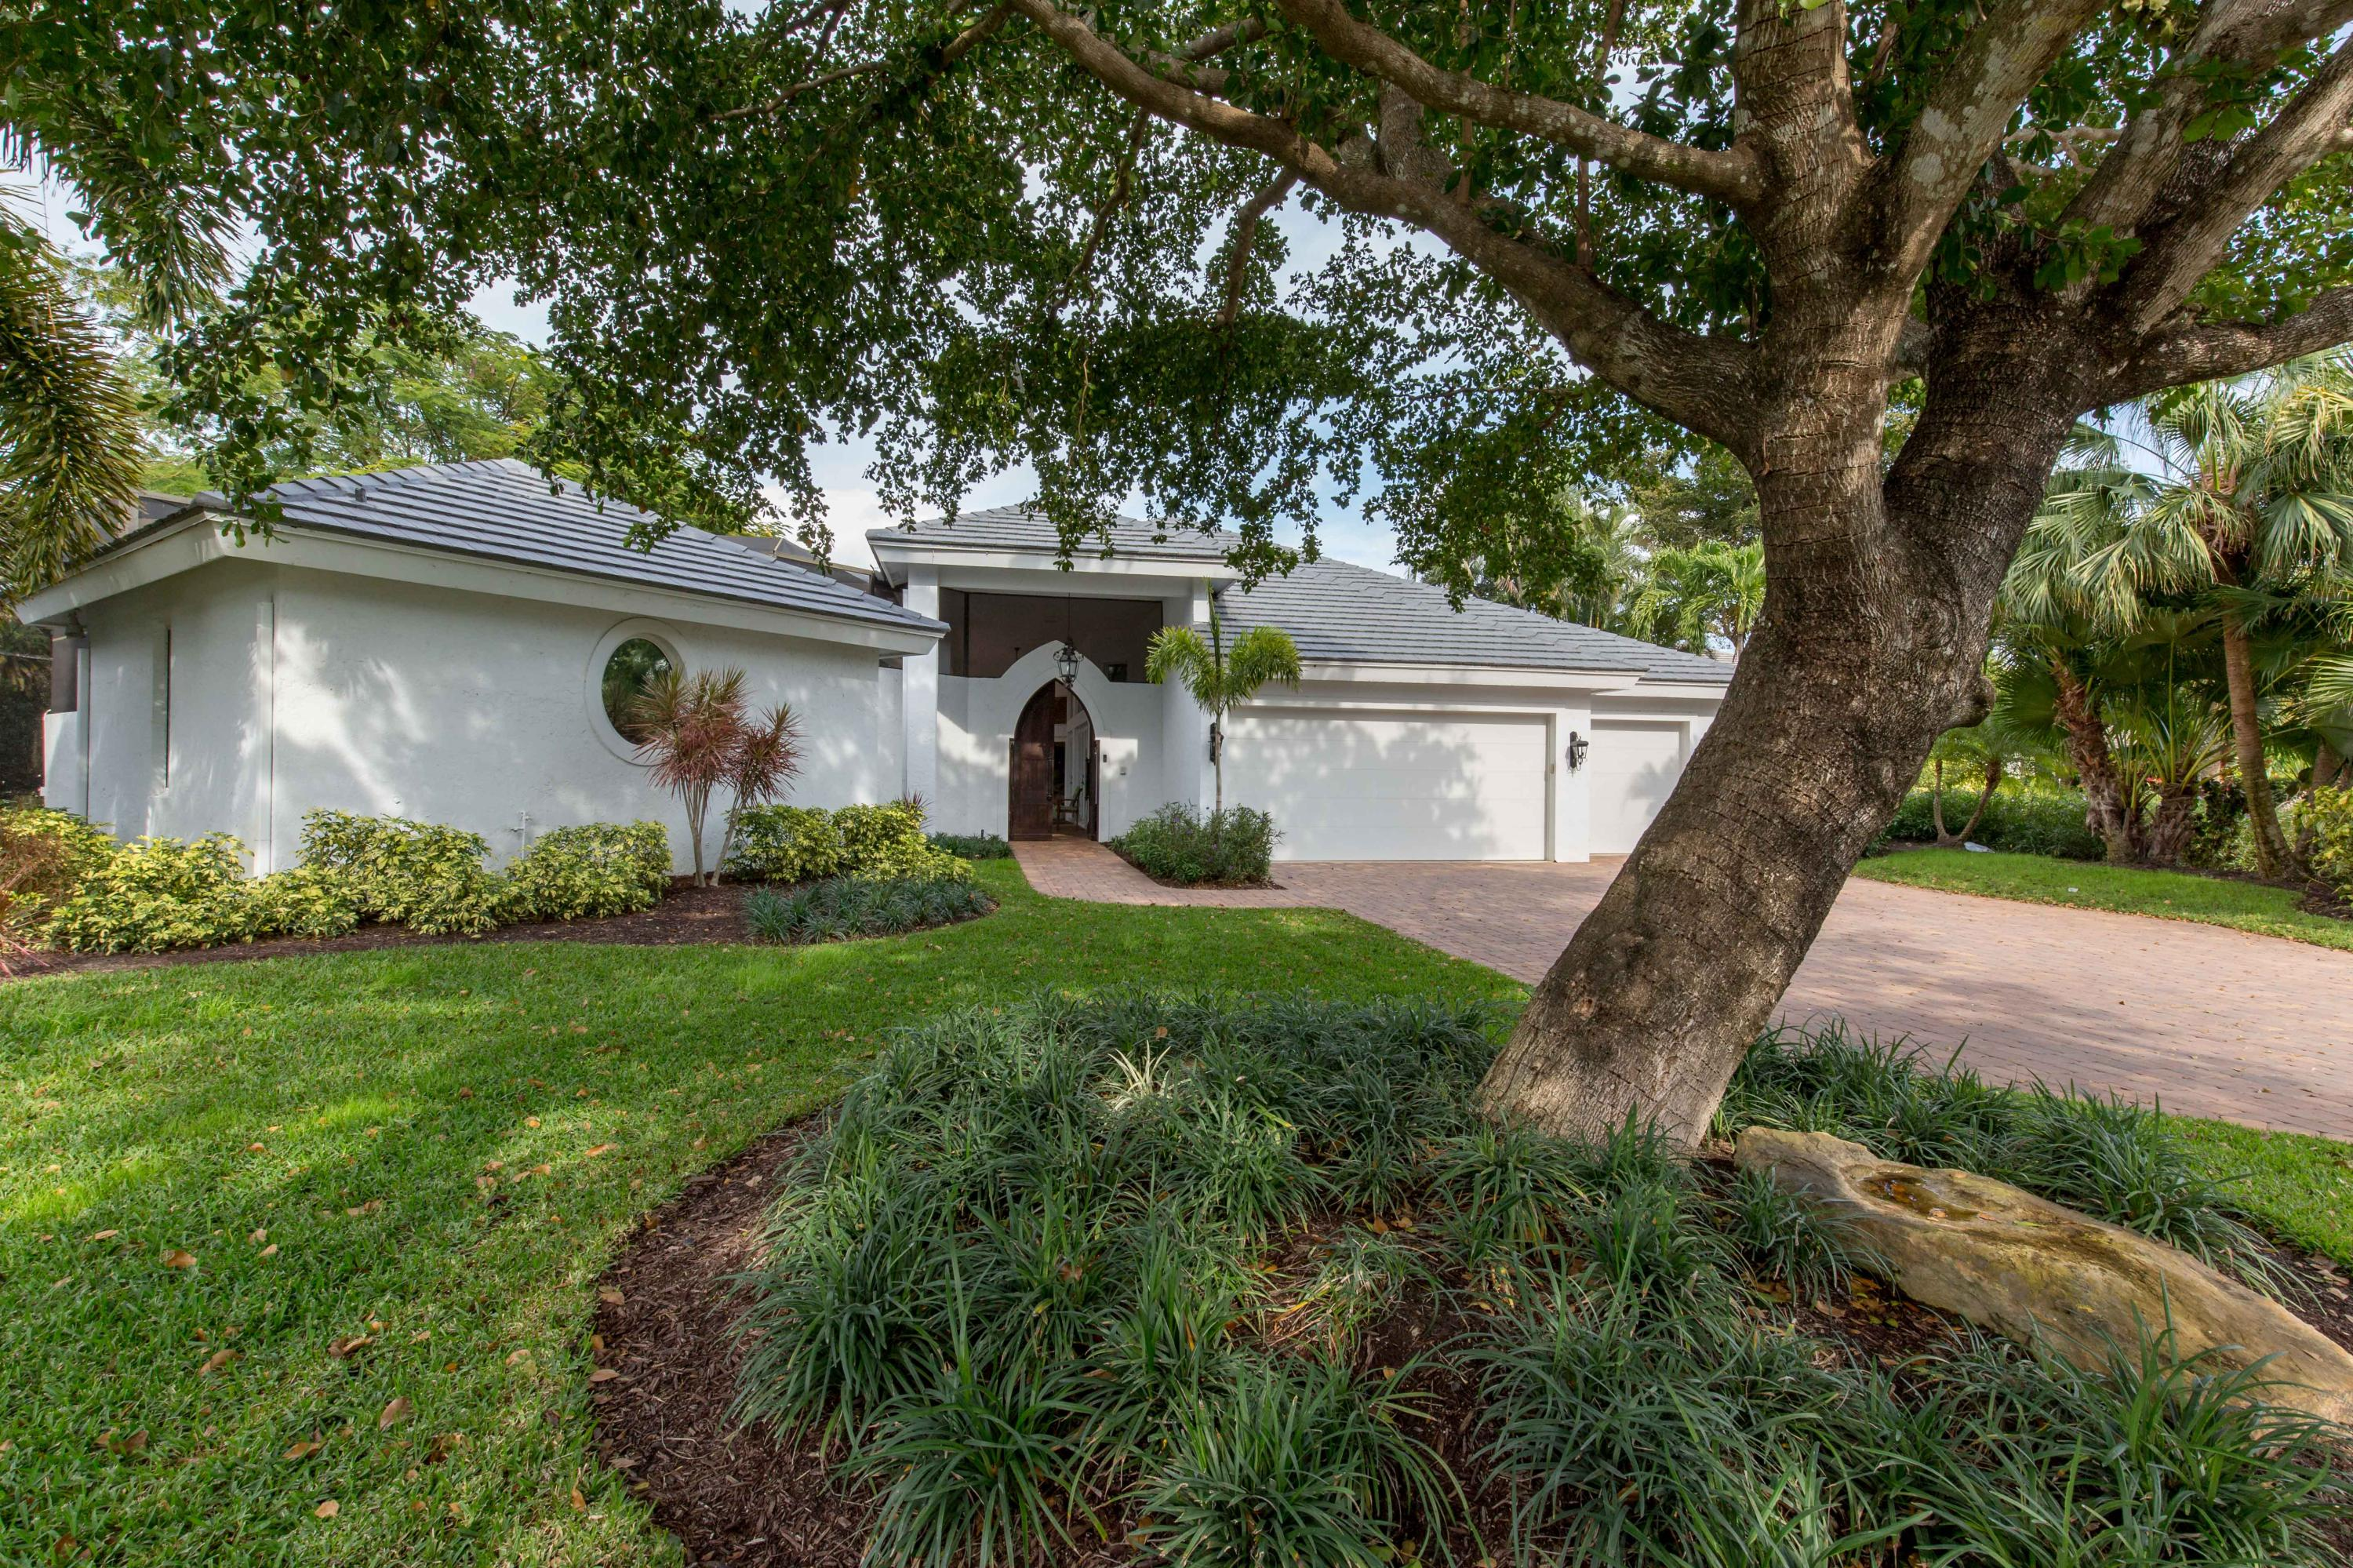 11167 Isle Brook Court, Wellington, Florida 33414, 4 Bedrooms Bedrooms, ,4.1 BathroomsBathrooms,Single Family,For Rent,Palm Beach Polo,Isle Brook,1,RX-10542531